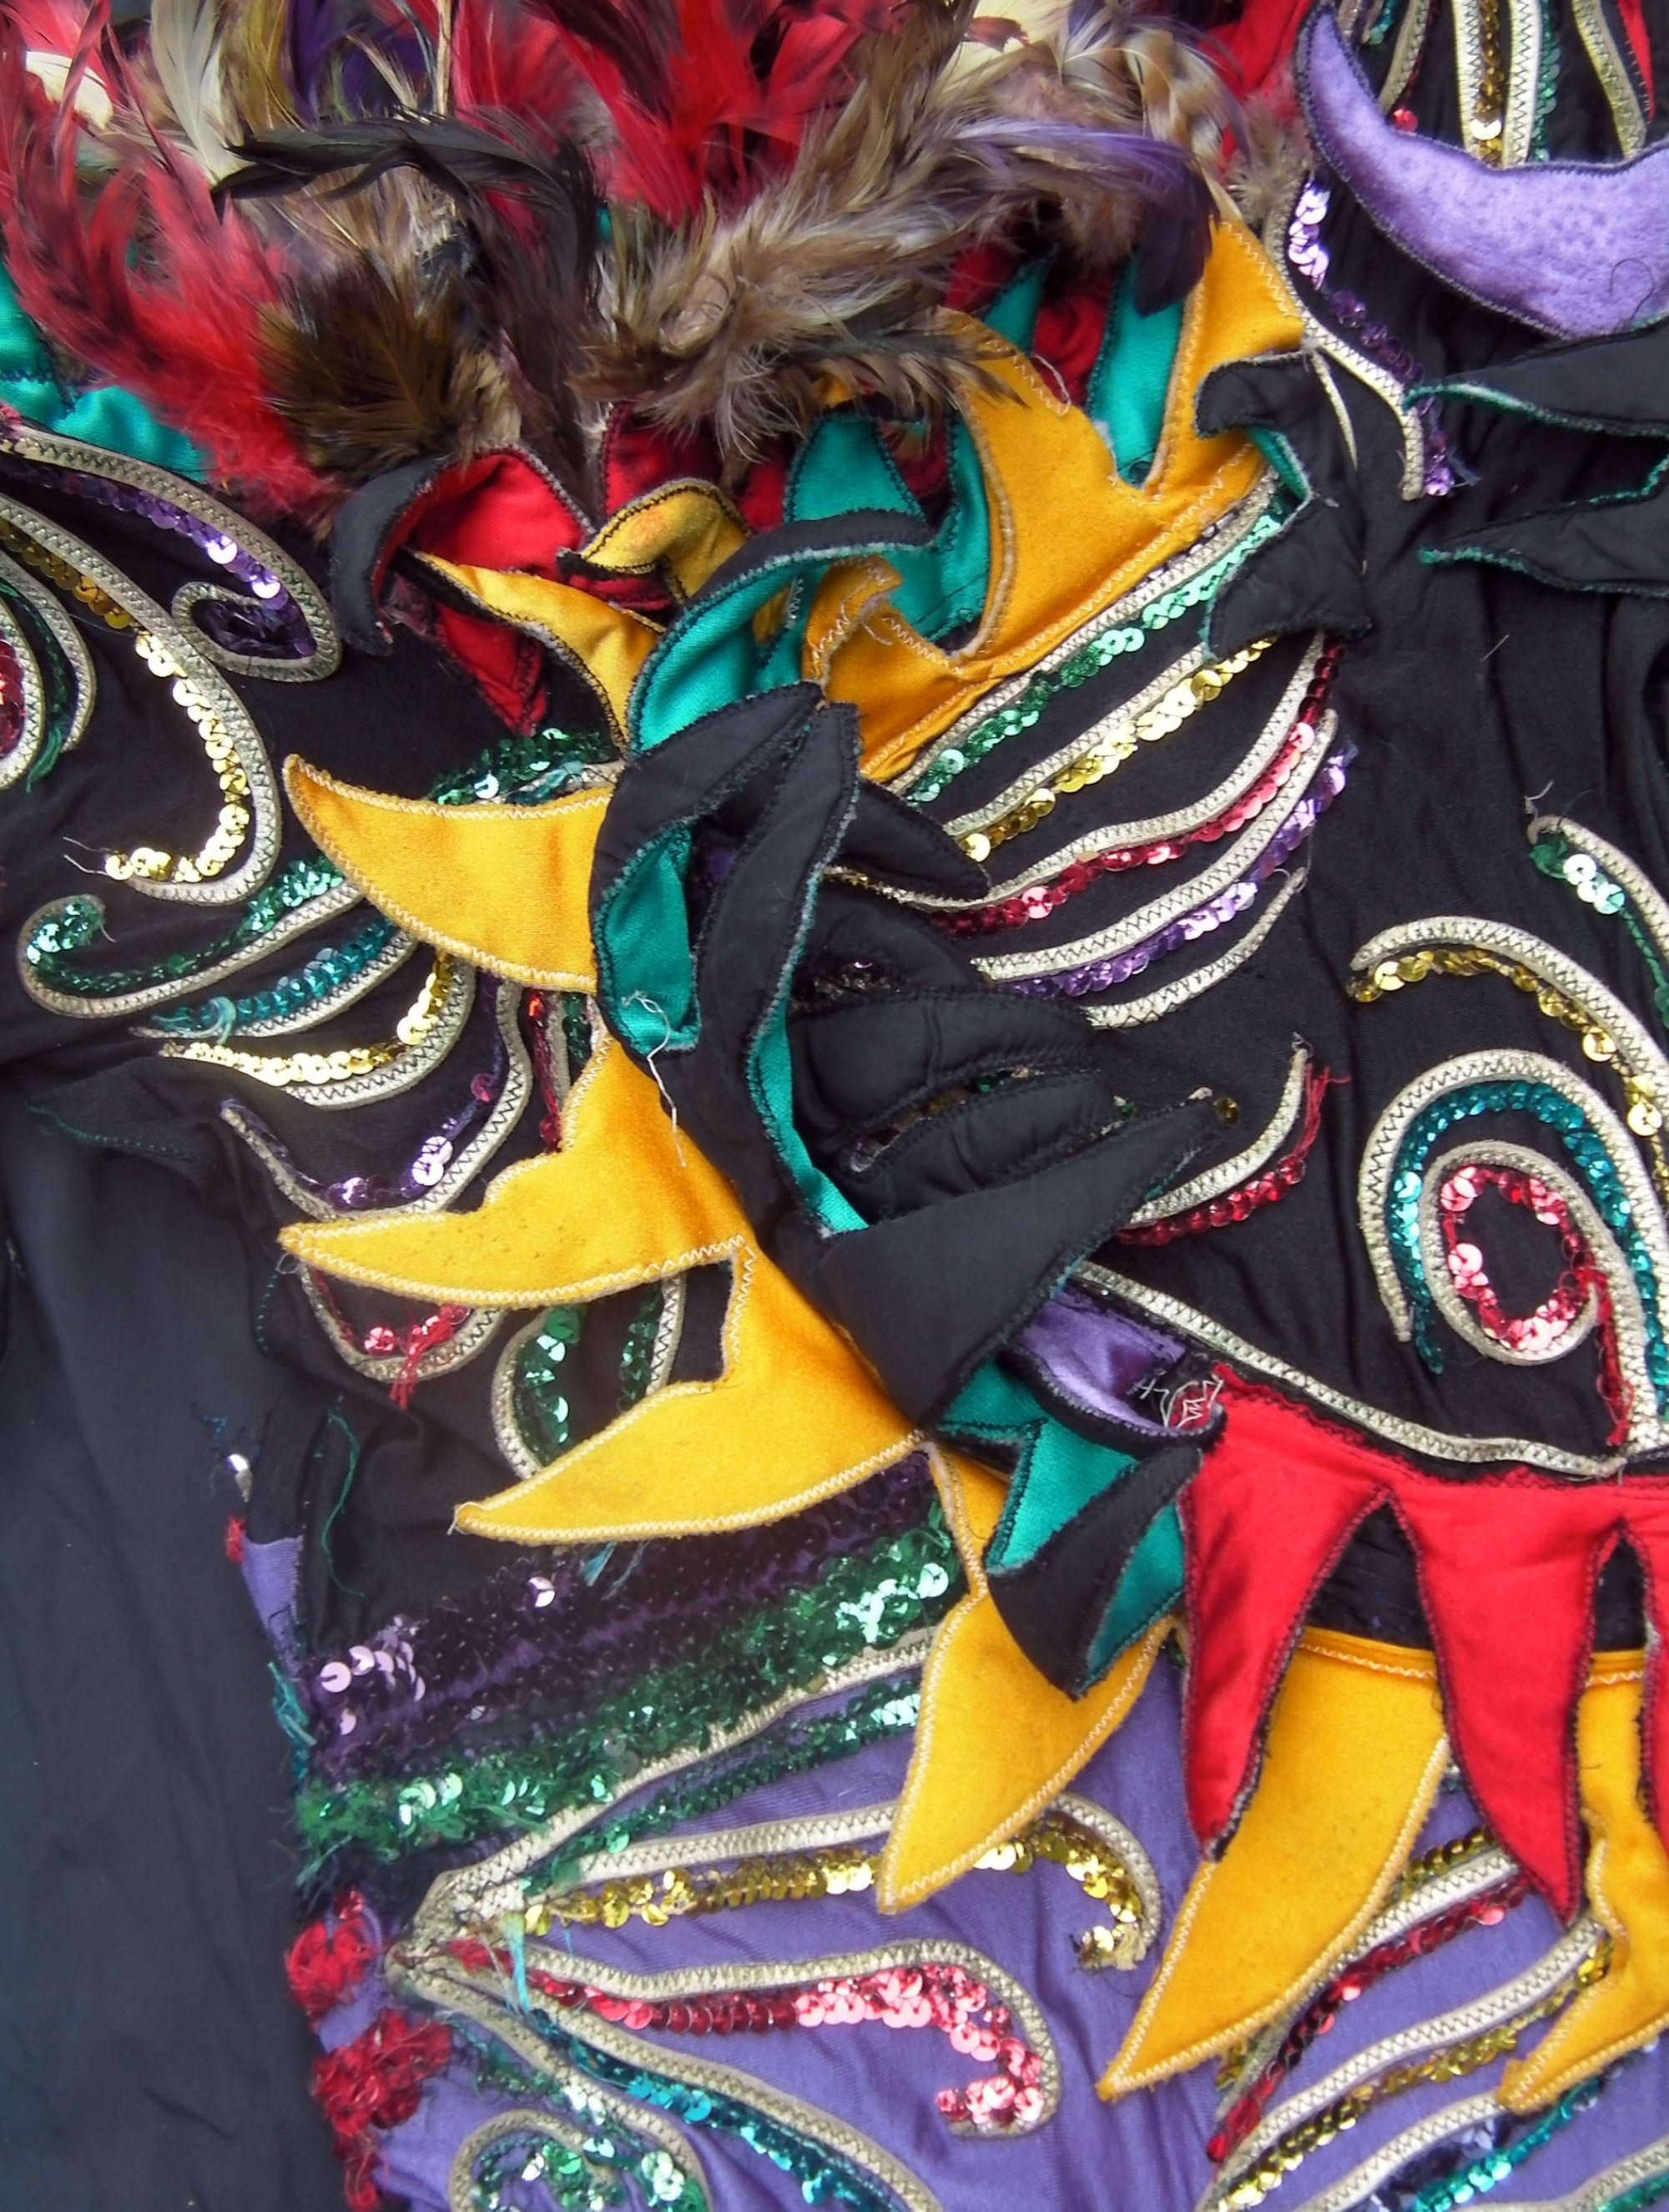 A detail of the Firebird costume